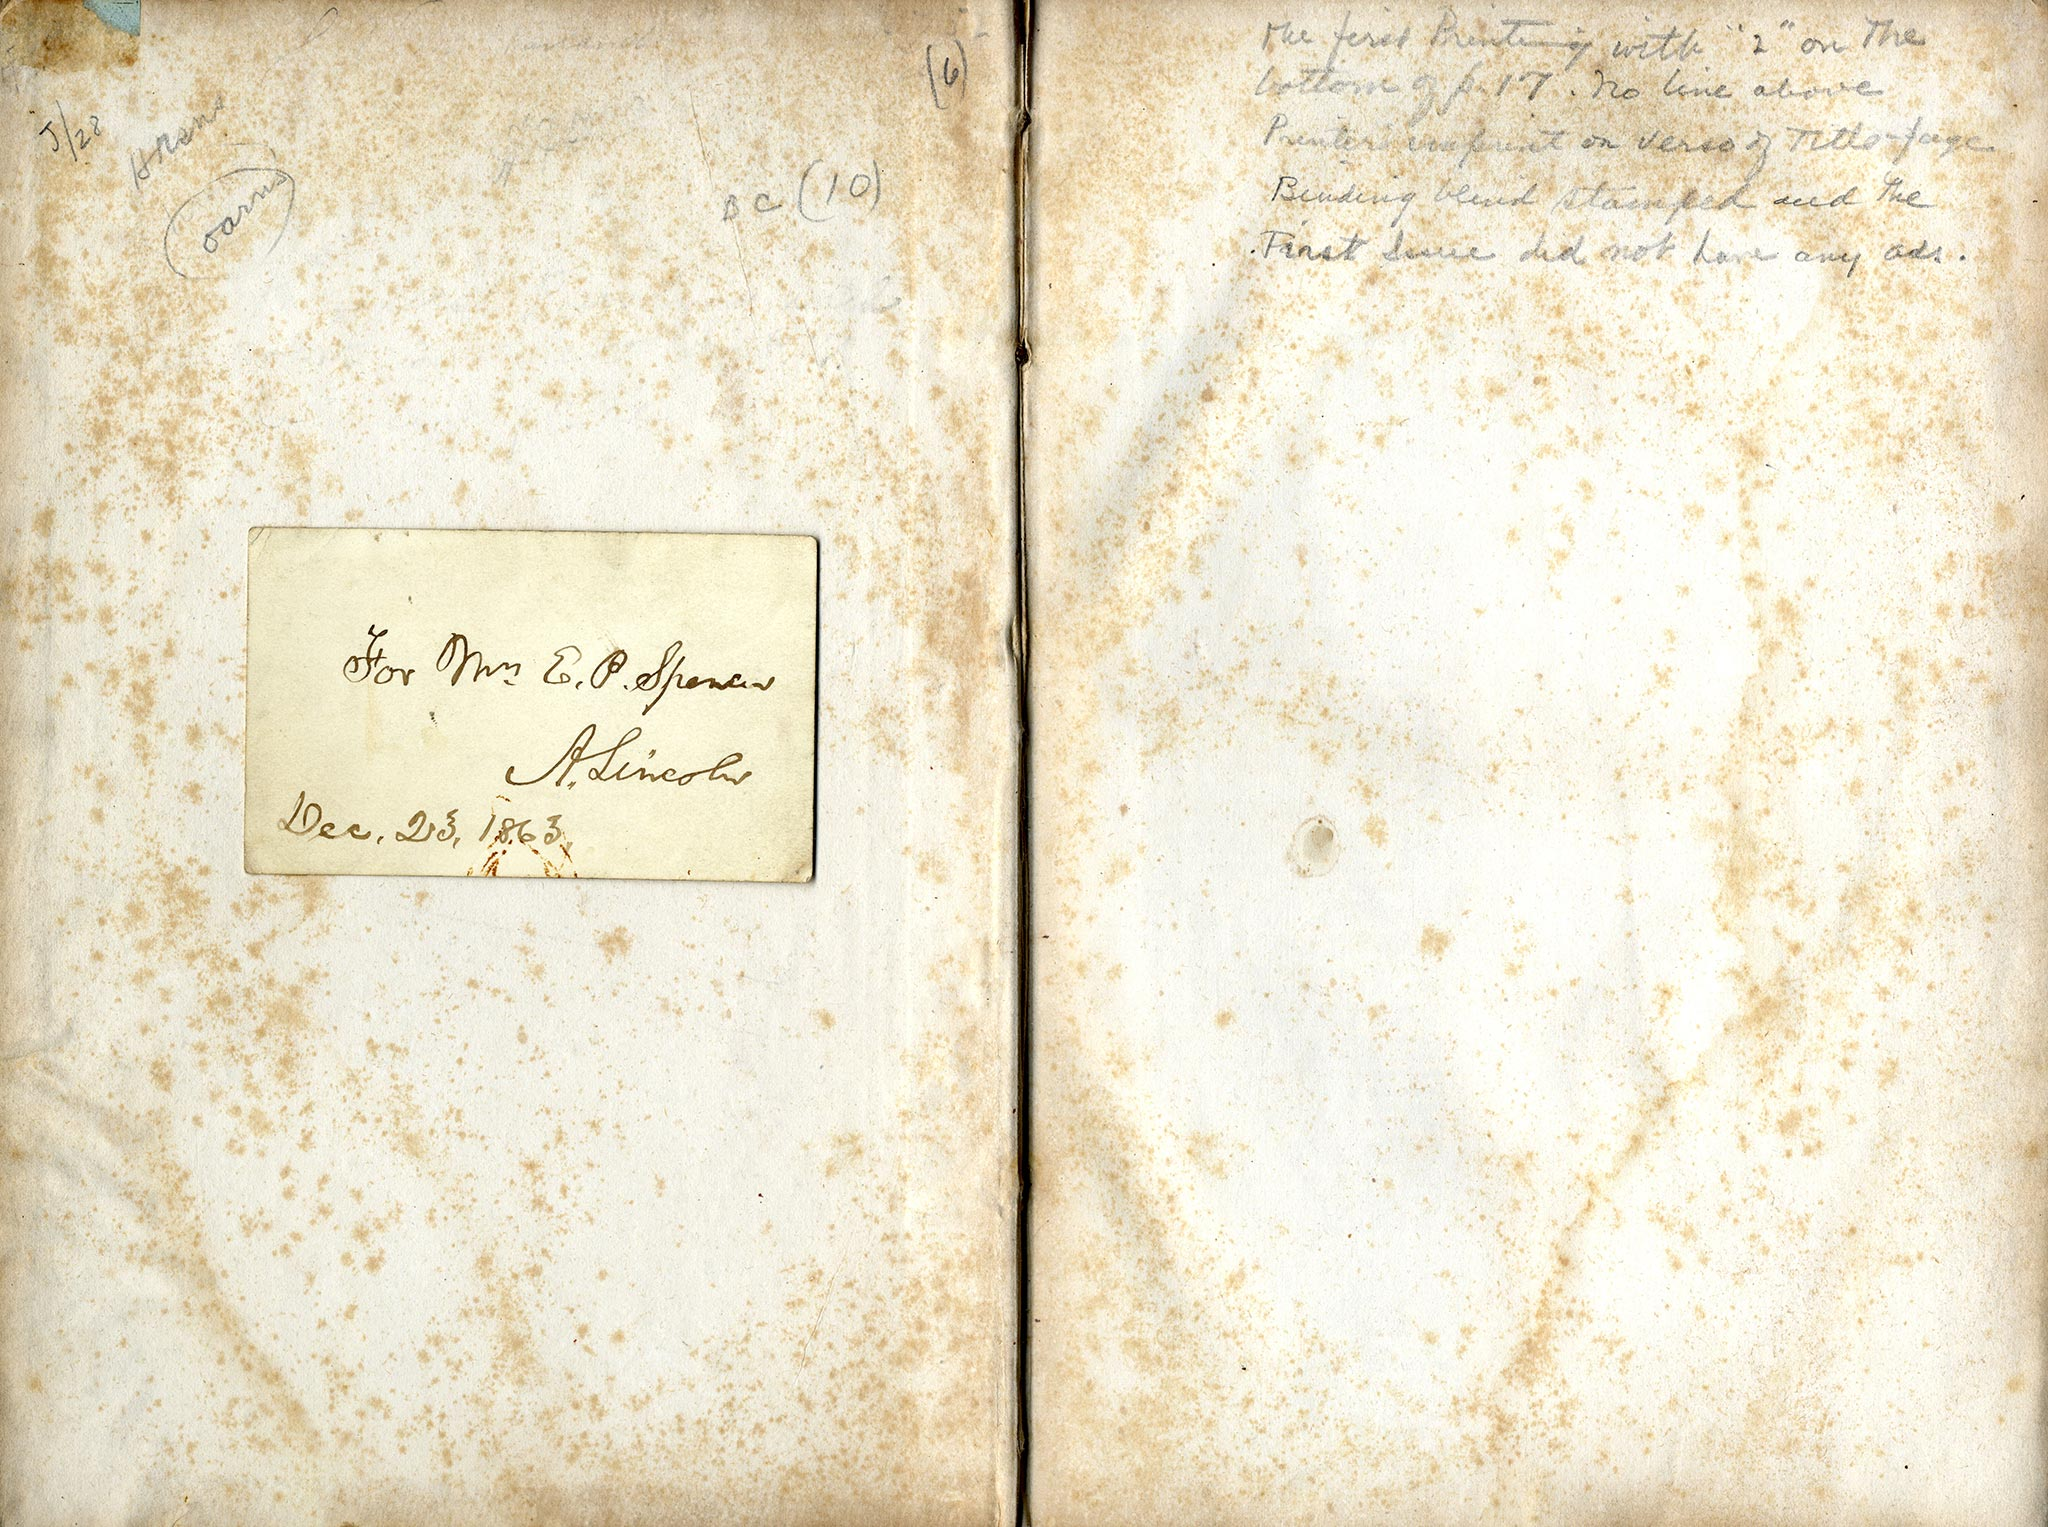 This copy of the first printing of Political Debates between Hon. Abraham Lincoln and Hon. Stephen A. Douglas (Cincinnati: Follett Foster, 1860) has an inscribed card attached to the flyleaf. Although Lincoln lost the U. S. senatorial race to incumbent Douglas in 1858, he was proud of his performance. He collected stenographic transcripts for publication as a book. The Debates sold over 30,000 copies and established Lincoln's political reputation nationally, enhancing his chances for nomination as the Republican Party's presidential candidate in 1860.